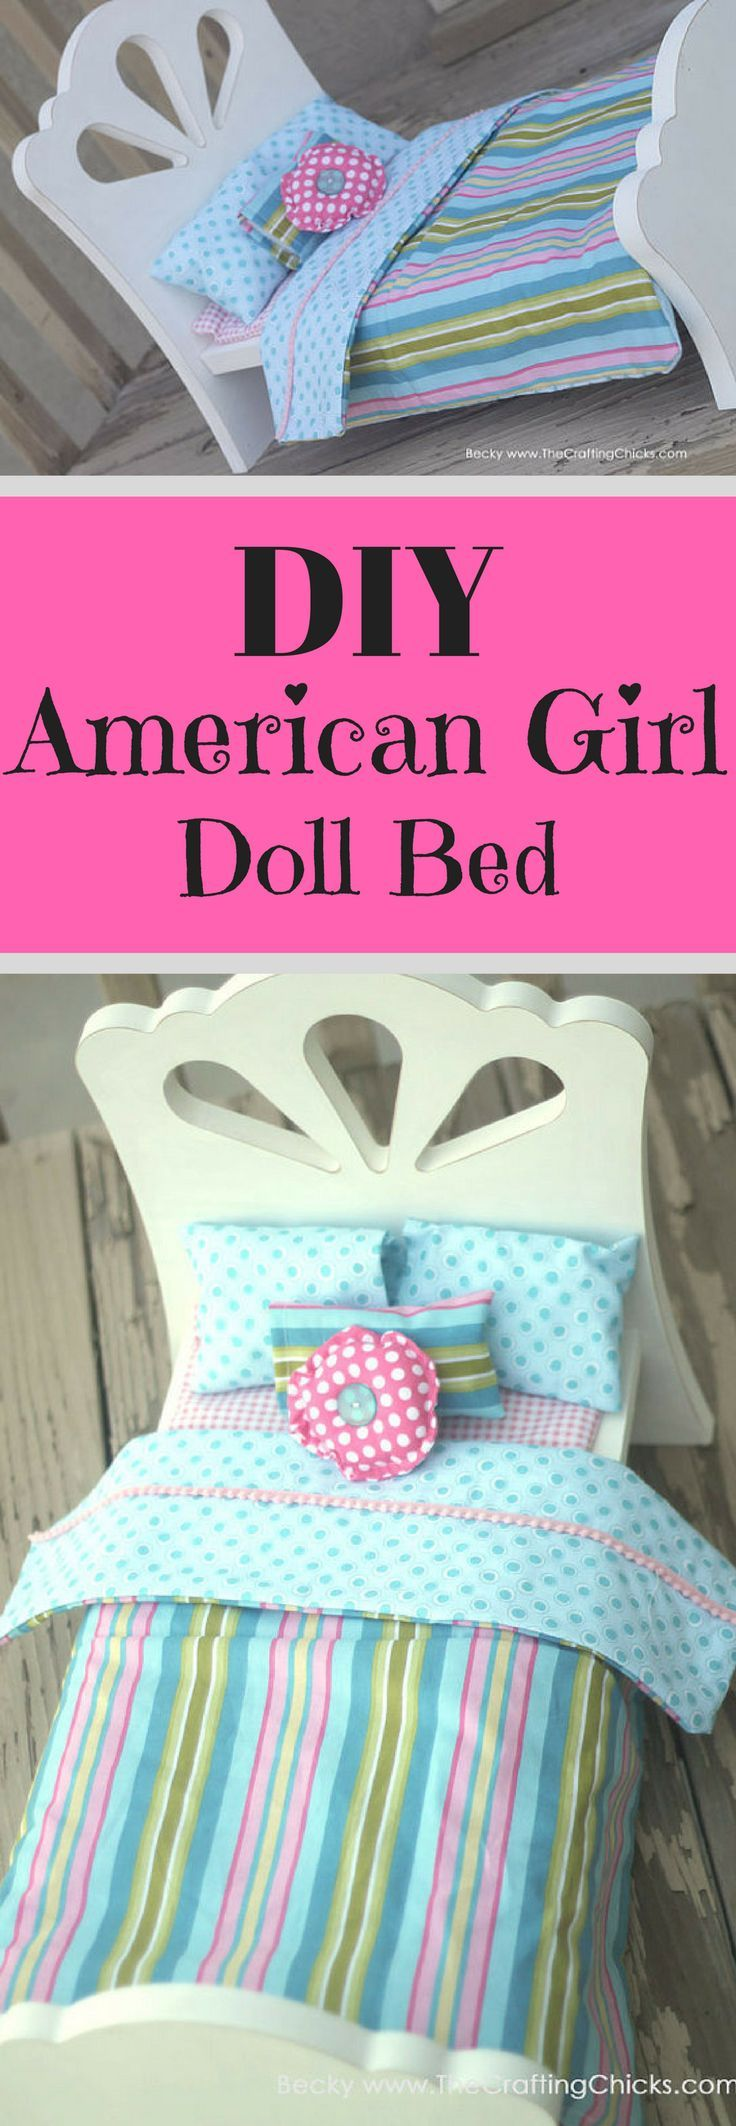 What an adorable bed for American Girl Dolls! DIY American Girl Doll Bed - Fit Most 18 Inch Dolls #ad #afflink #diy #americangirl